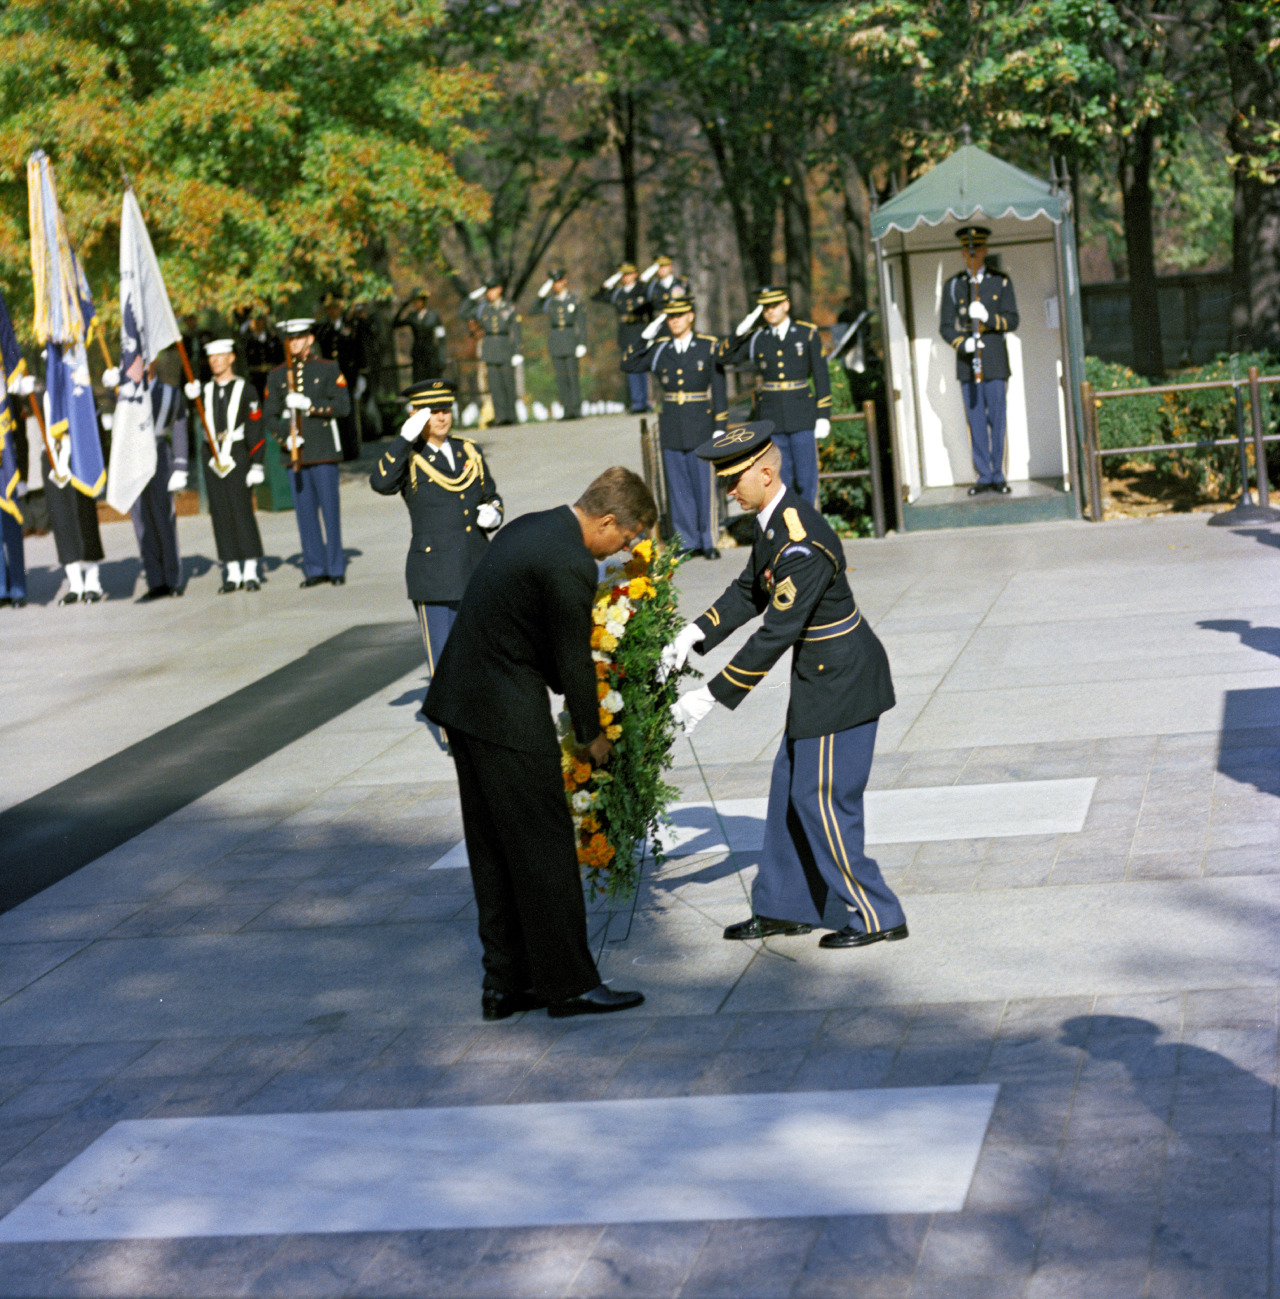 President John F. Kennedy Lays a Wreath at the Tomb of the Unknown Soldier as part of Veterans Day Remembrances, Arlington National Cemetery, Arlington, Virginia, 11/11/1961 Series: Robert Knudsen White House Photographs, 1/20/1961 - 12/19/1963. Collection: White House Photographs, 12/19/1960 - 3/11/1964 (Holdings of the @jfklibrary)